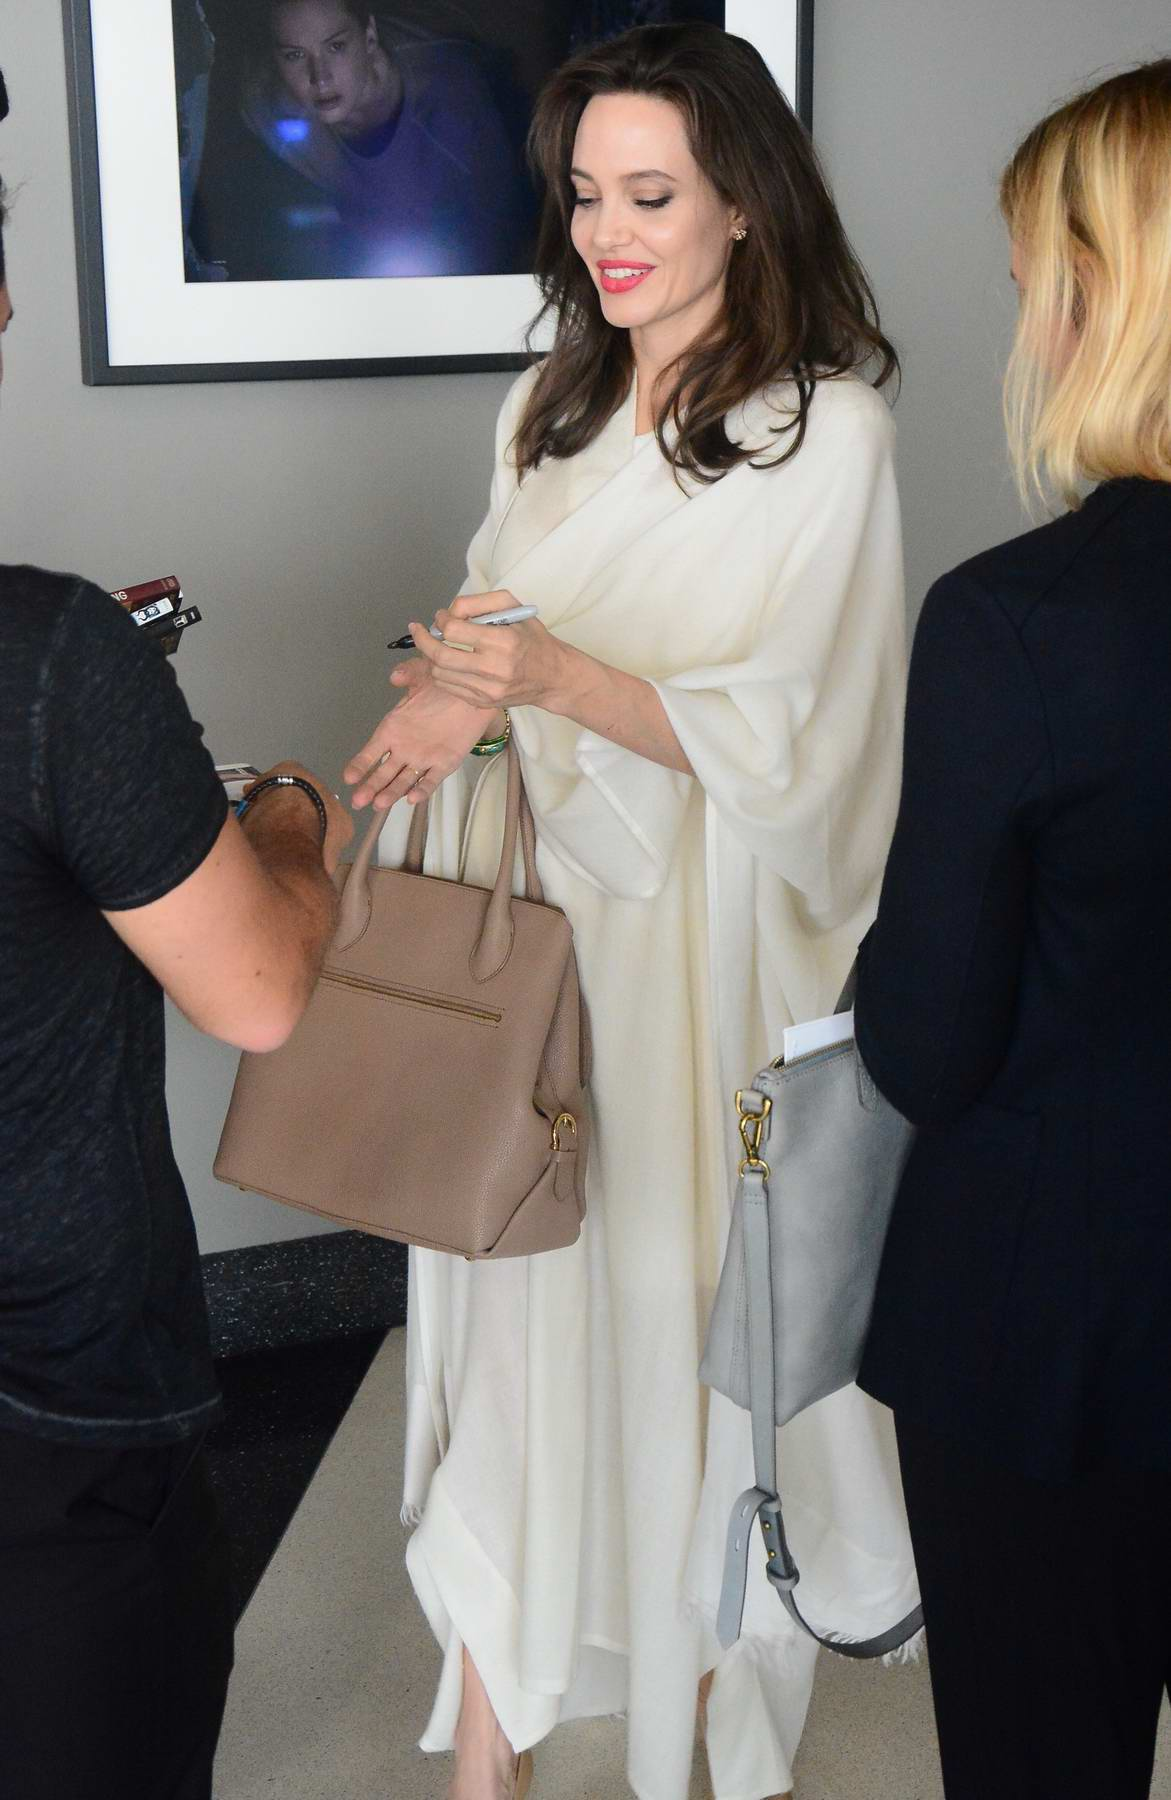 Angelina Jolie in all white arriving to movie Q and A in Los Angeles